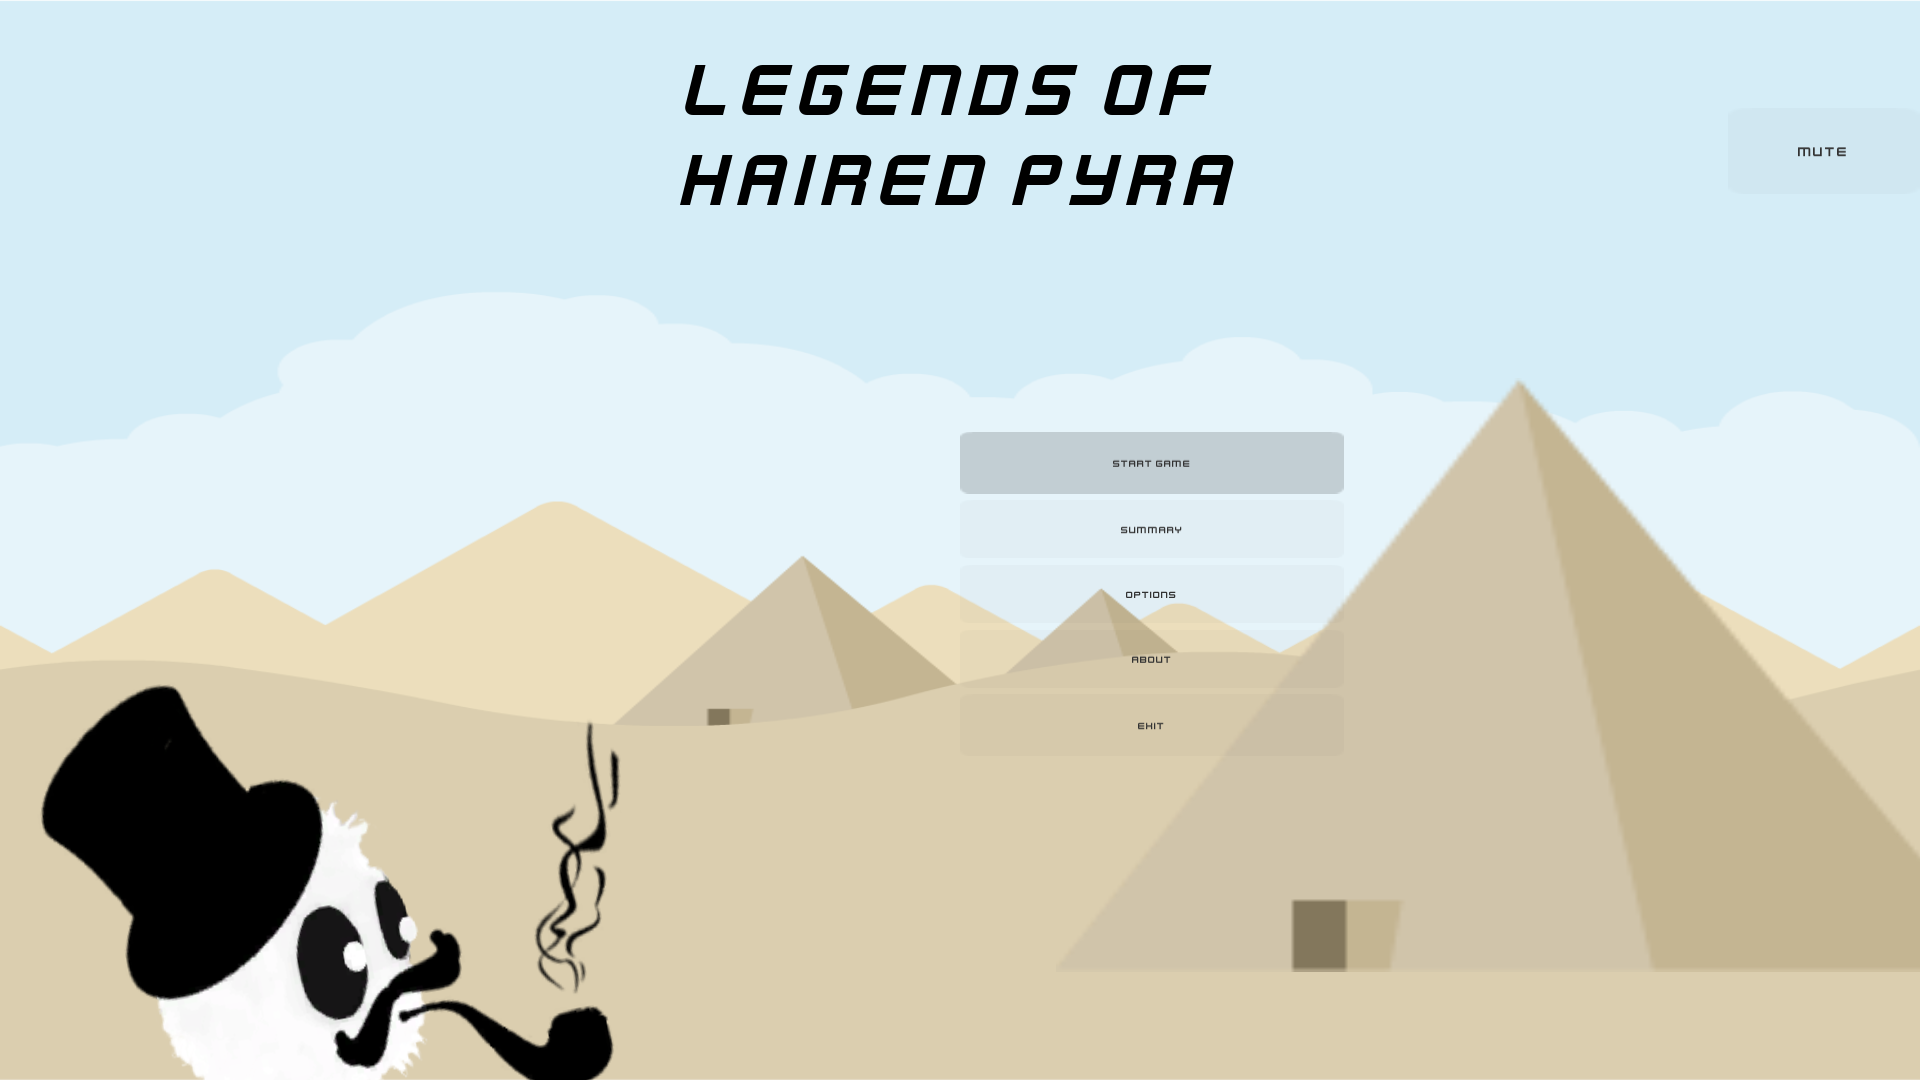 Legends of haired Pyra